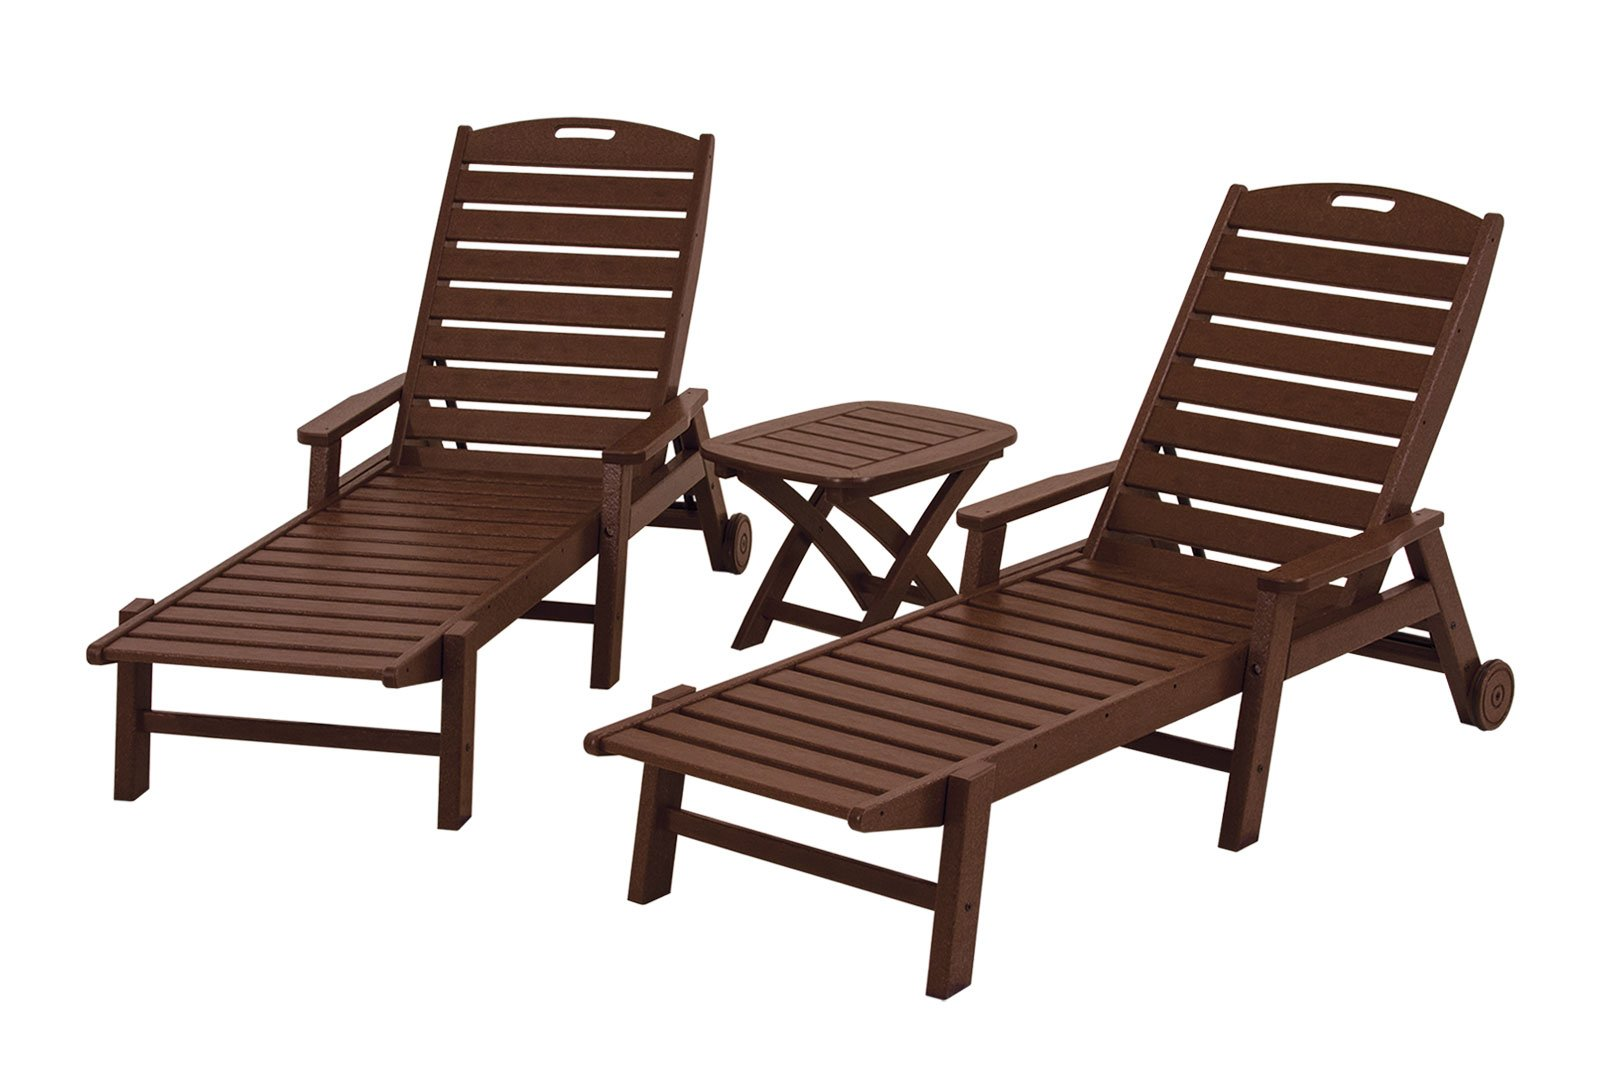 POLYWOOD PWS145-1-MA Nautical 3-Piece Chaise Set, Mahogany by POLYWOOD (Image #1)